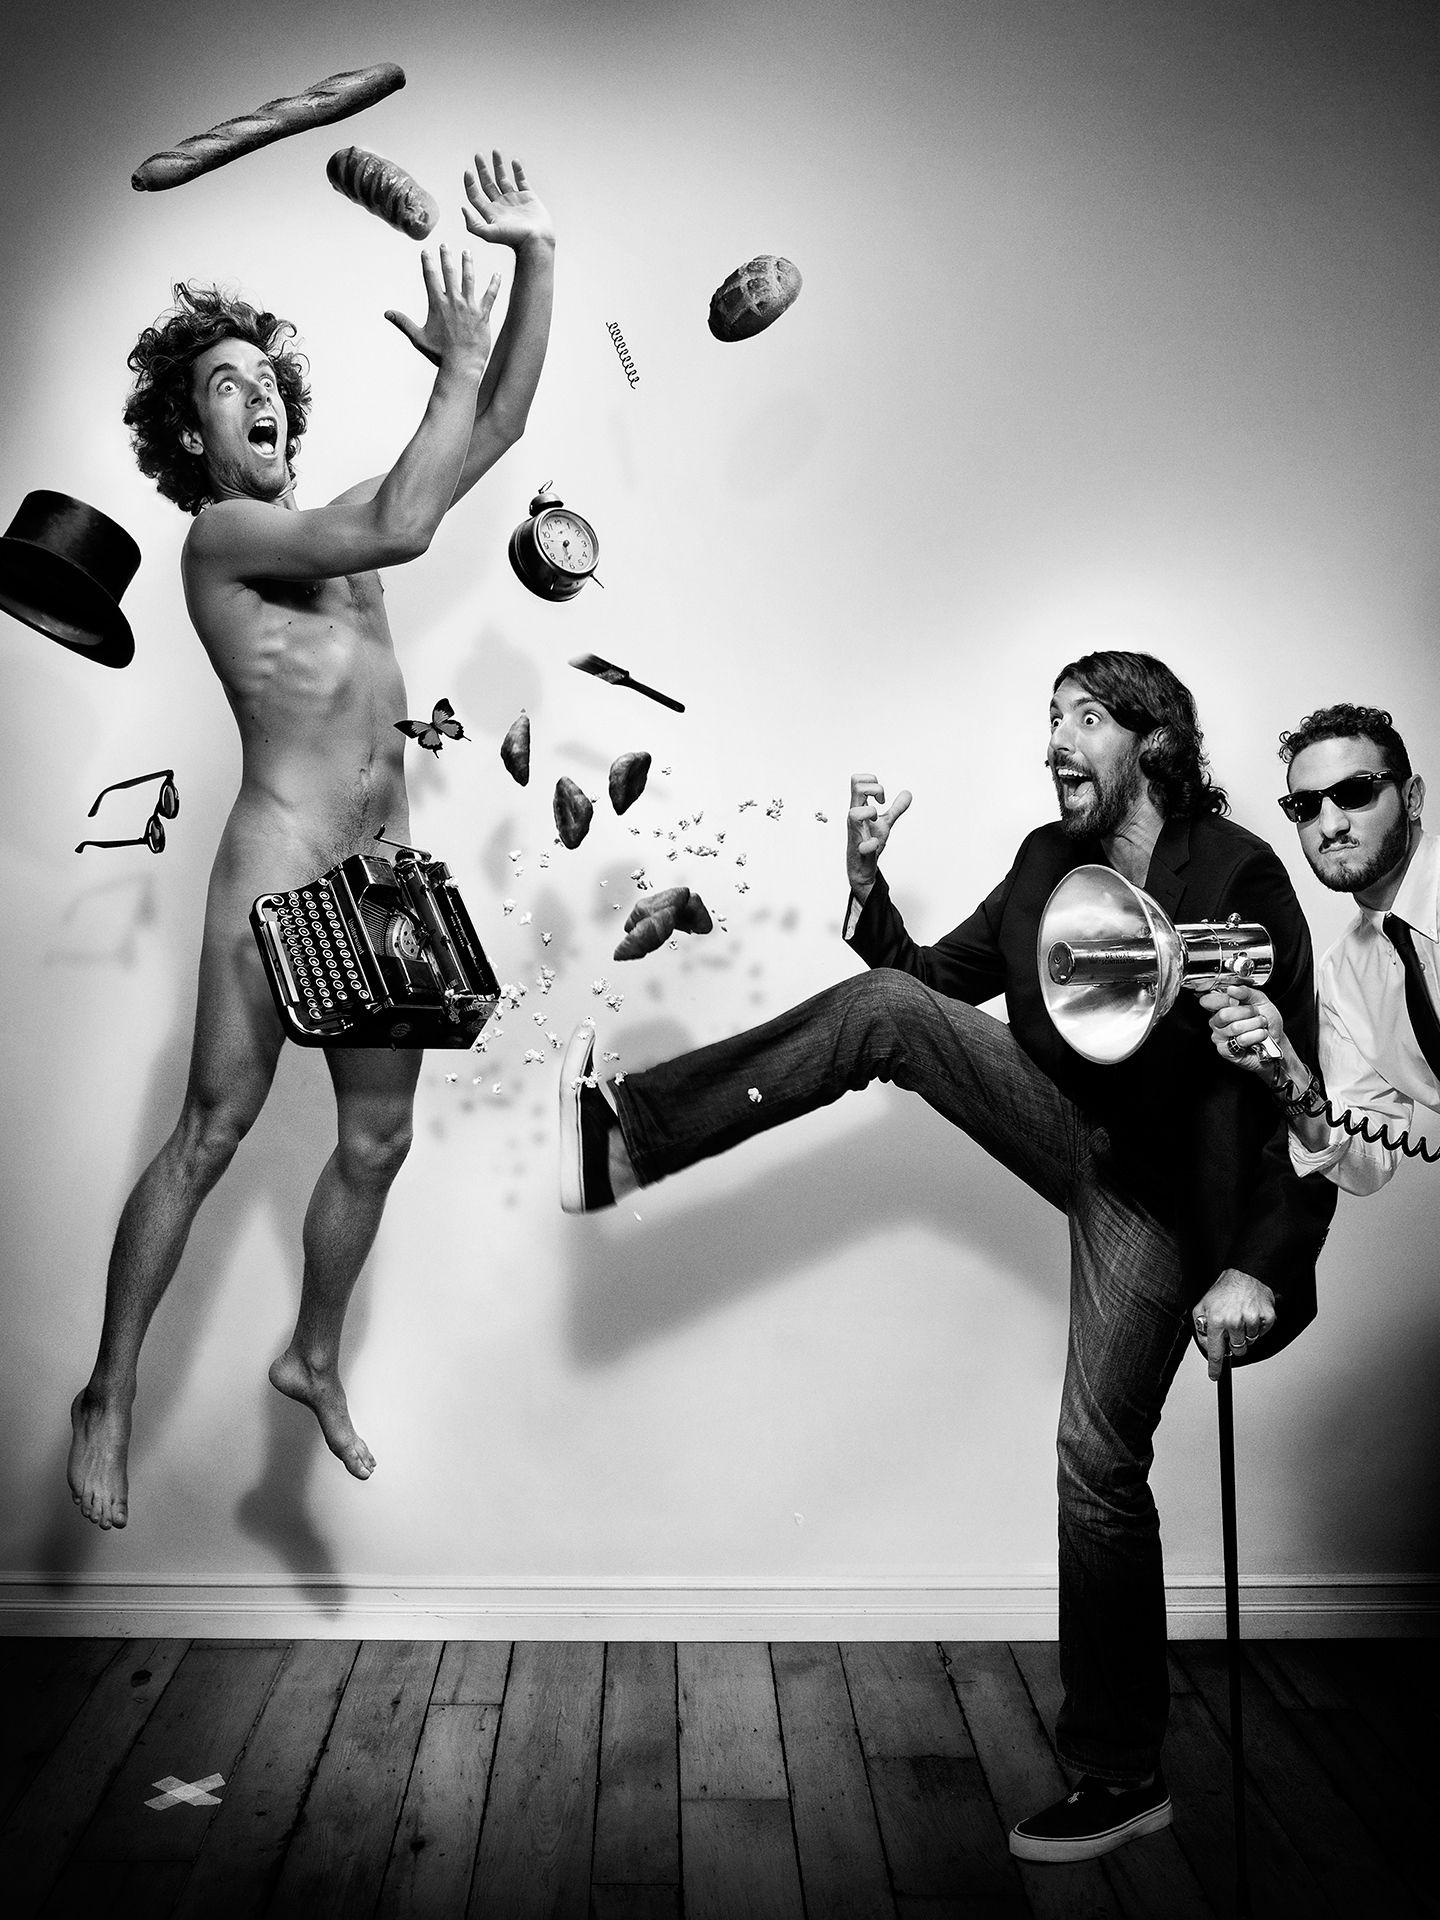 Radio Radio music group photographed jumping in the air by Jocelyn Michel for JUMP personal series